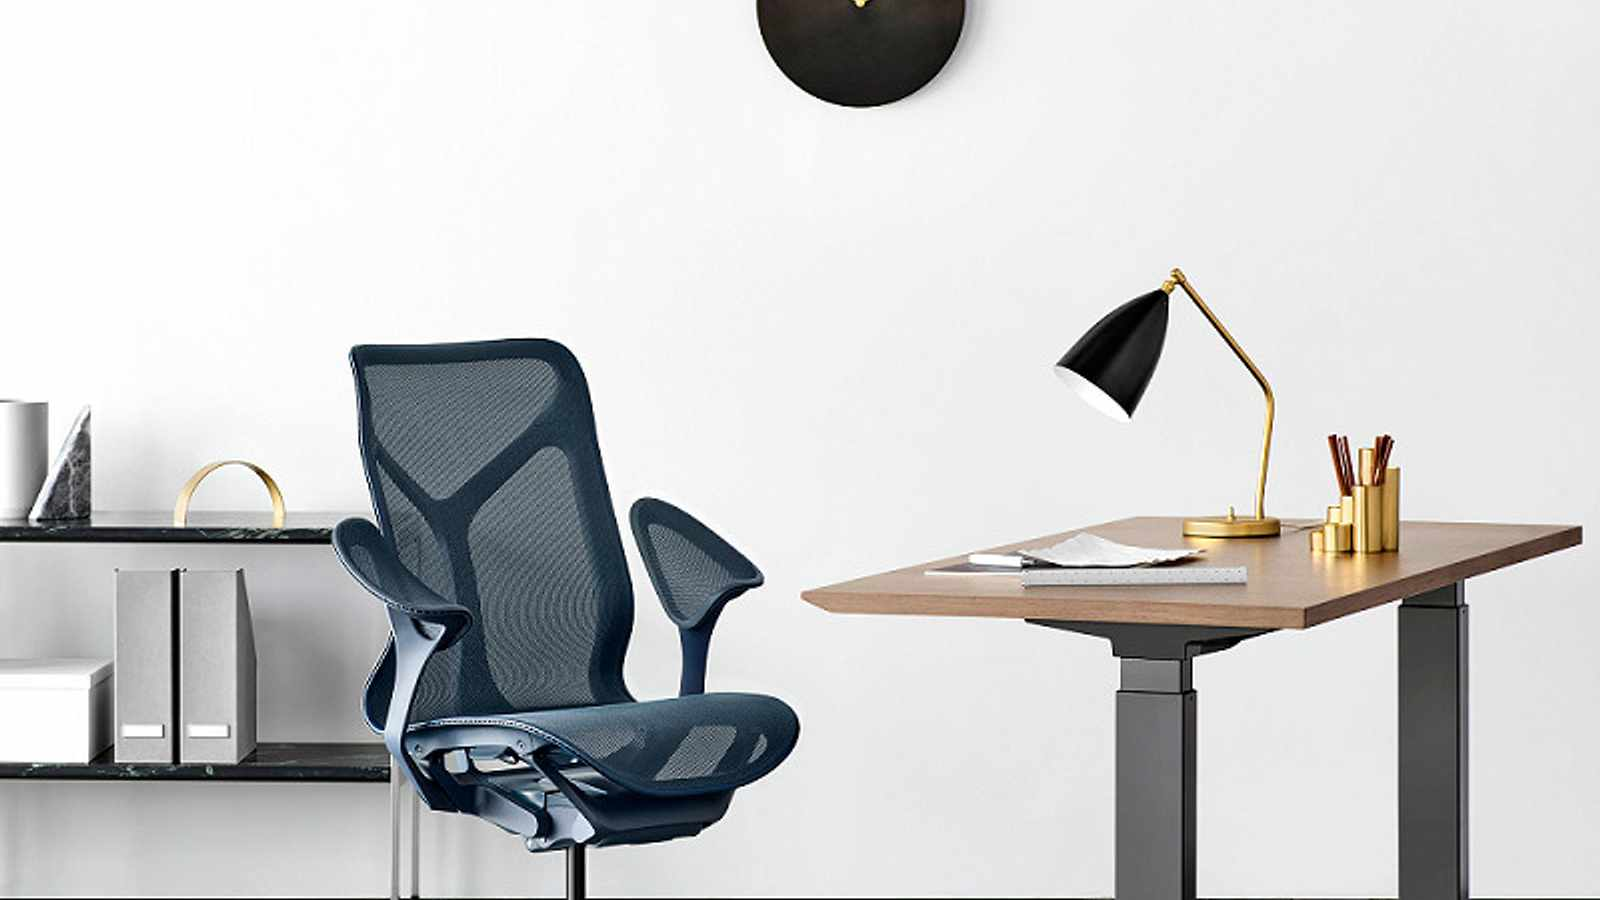 Herman Miller Cosm chair featured in TIME 100 Best Inventions of 2019